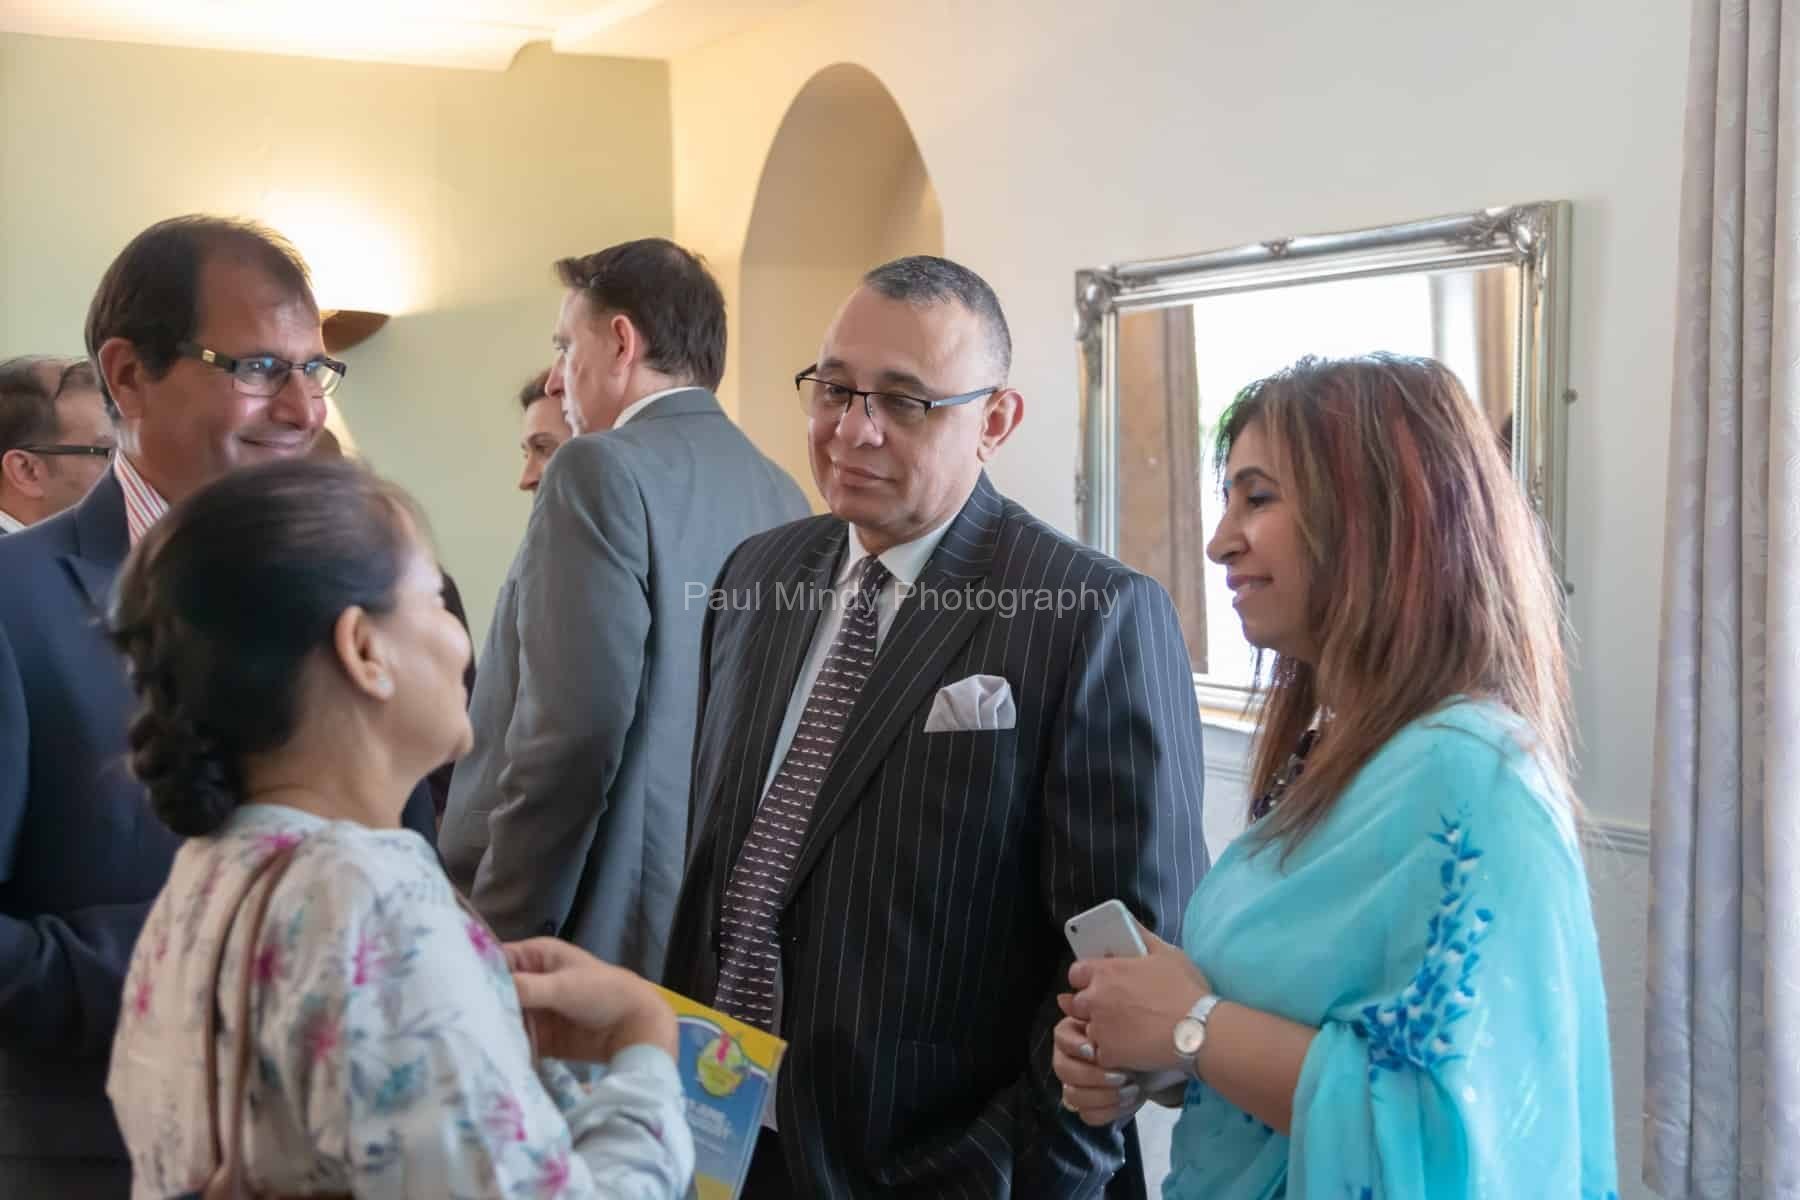 Punjabi-Festival-Launch-Liz-Truss-Thomas-Paine-13